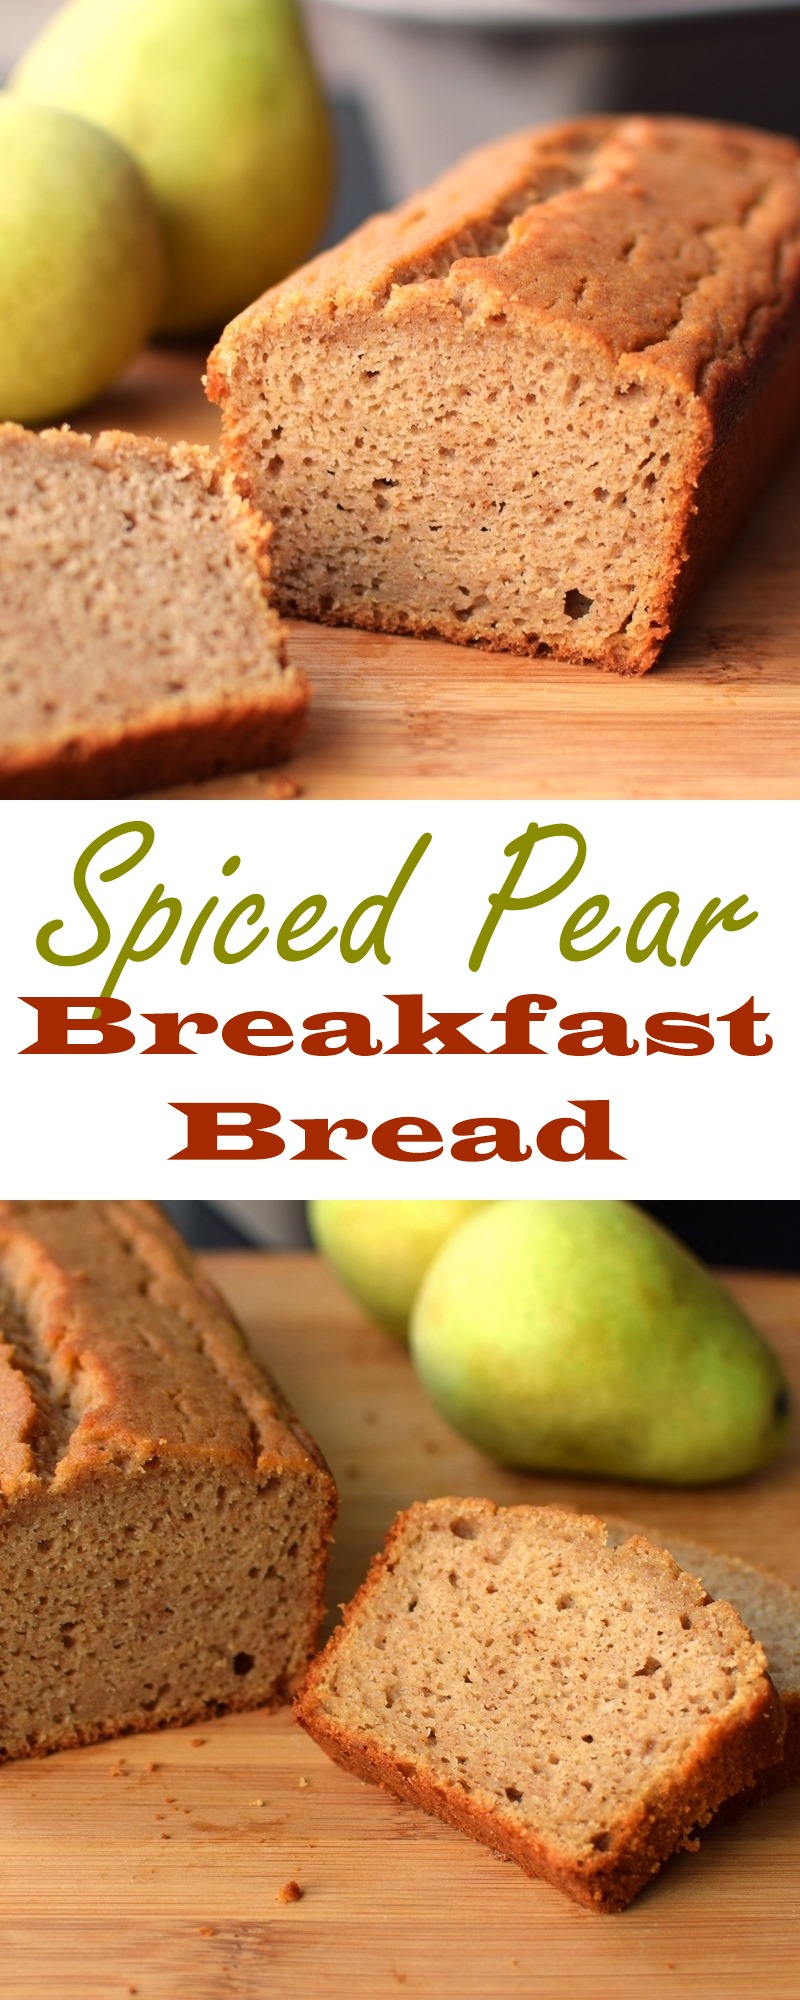 Spiced Pear Breakfast Bread Recipe: Healthy, dairy-free, nut-free, soy-free